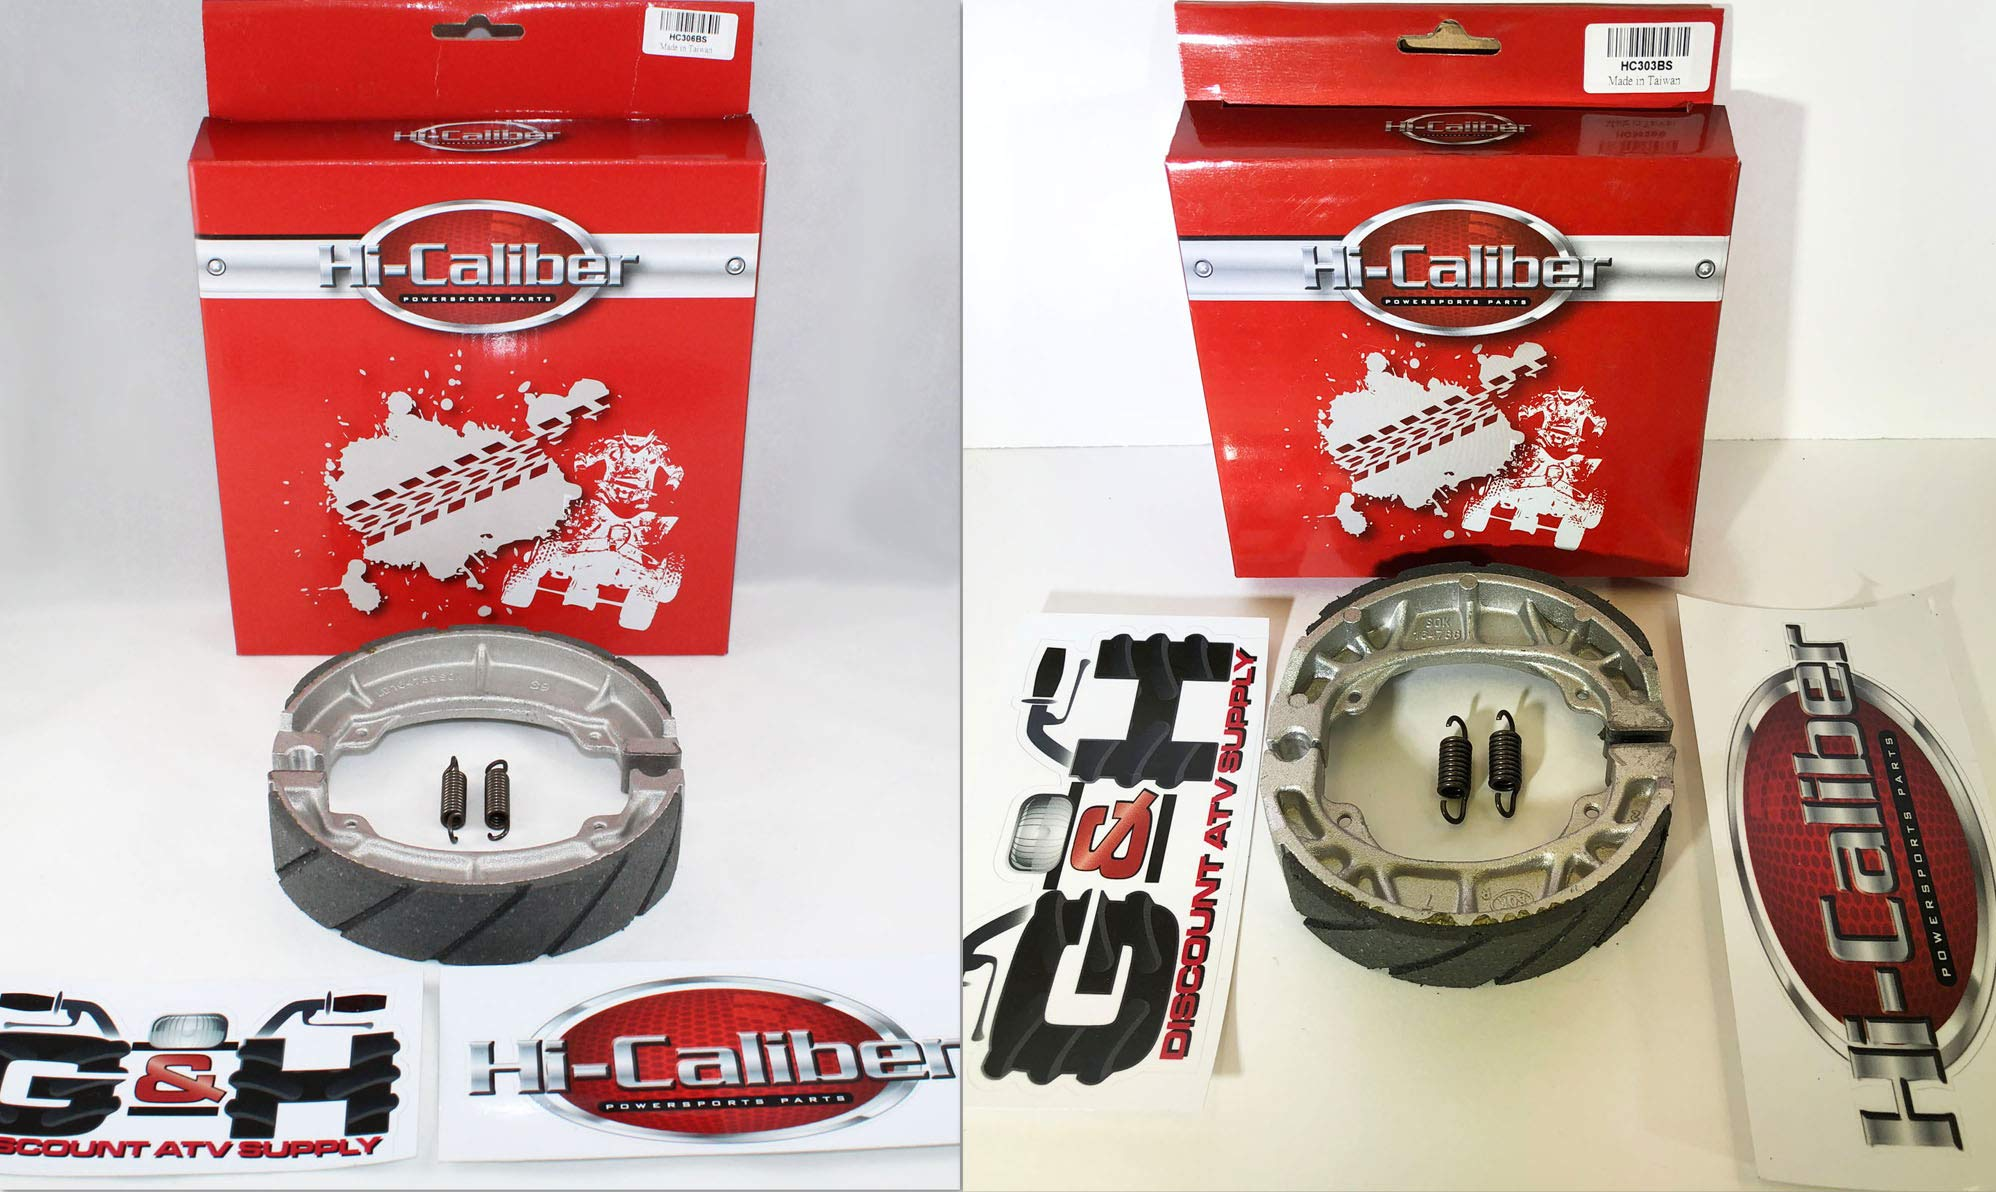 FRONT & REAR SET OF WATER GROOVED BRAKE SHOES + SPRINGS For the Honda ATC 200 200M 200E 200ES BIG RED by Hi-Caliber Powersports Parts